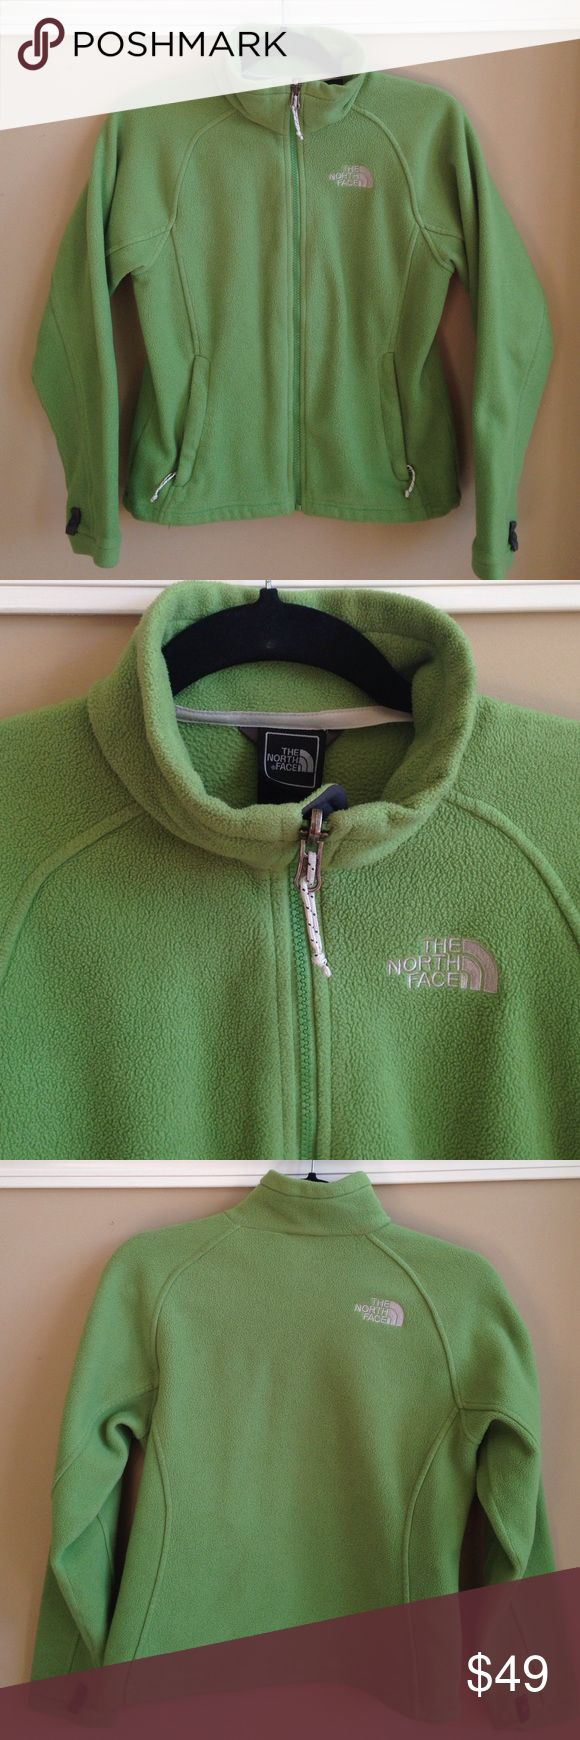 The North Face Green Zip Up Fleece Coat. Size XS. Women's North Face Green Zip Up Fleece Jacket. Size XS. Very good, pre-owned condition. The North Face Jackets & Coats